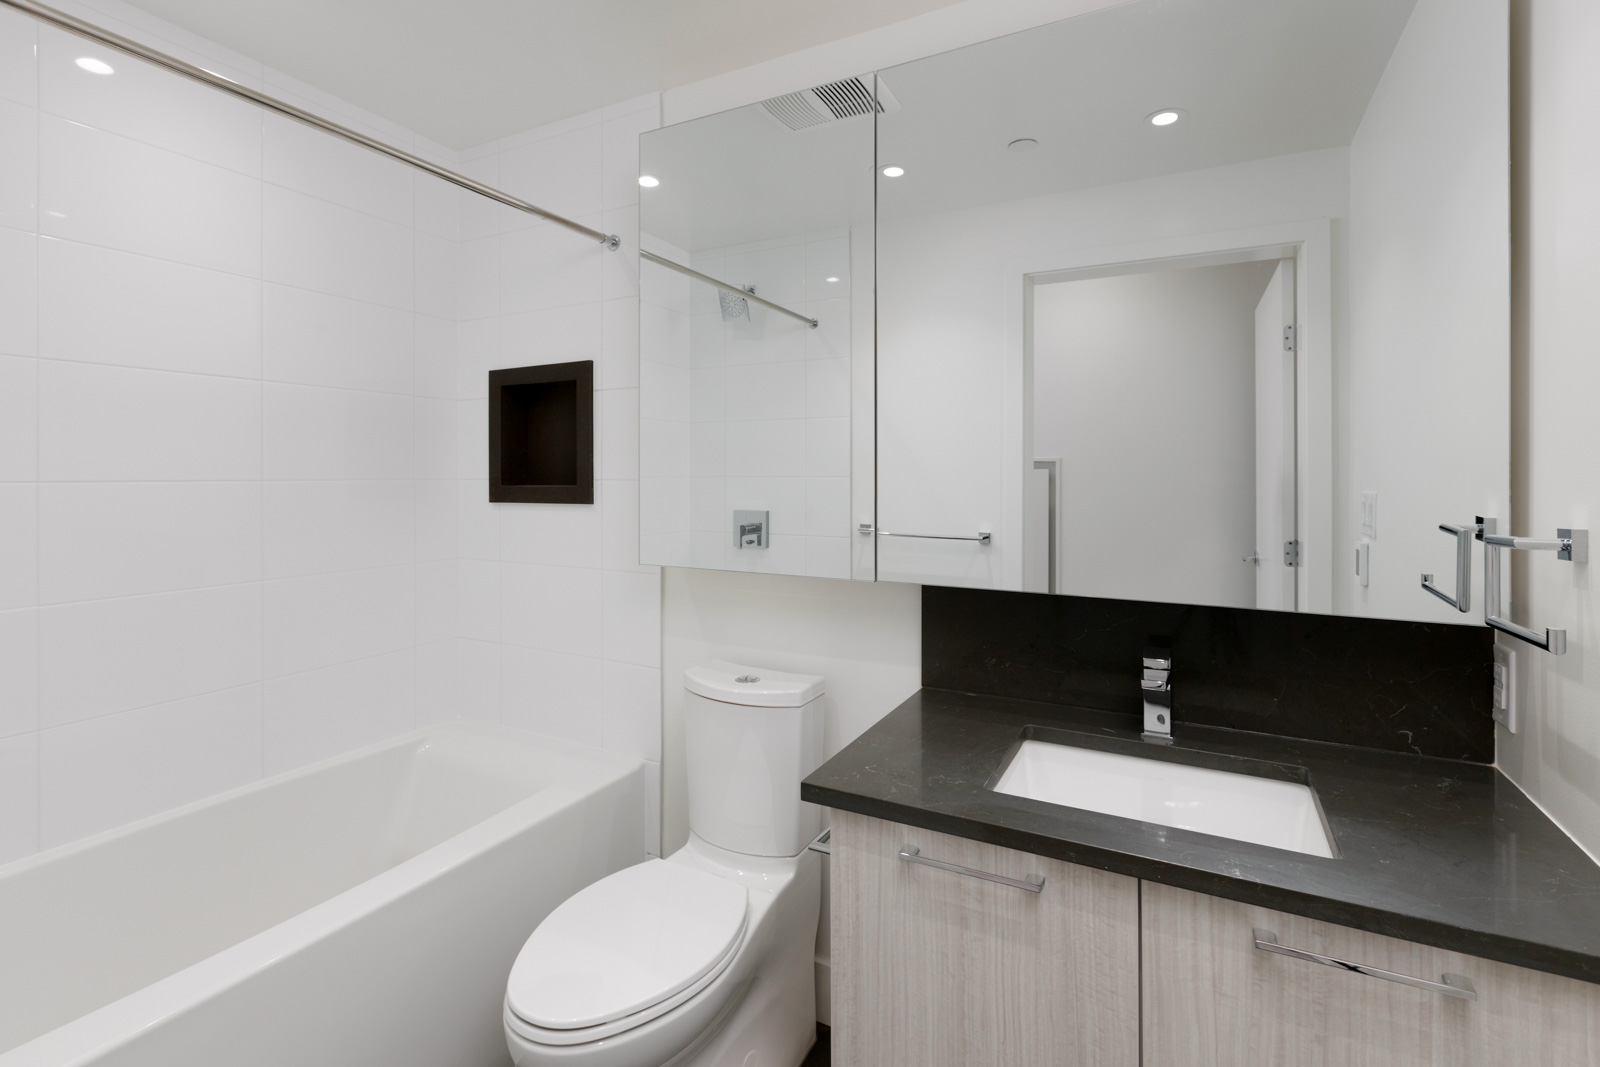 bathroom of empty condo managed by birds nest properties at avalon 2 at 8570 rivergrass drive in river district vancouver